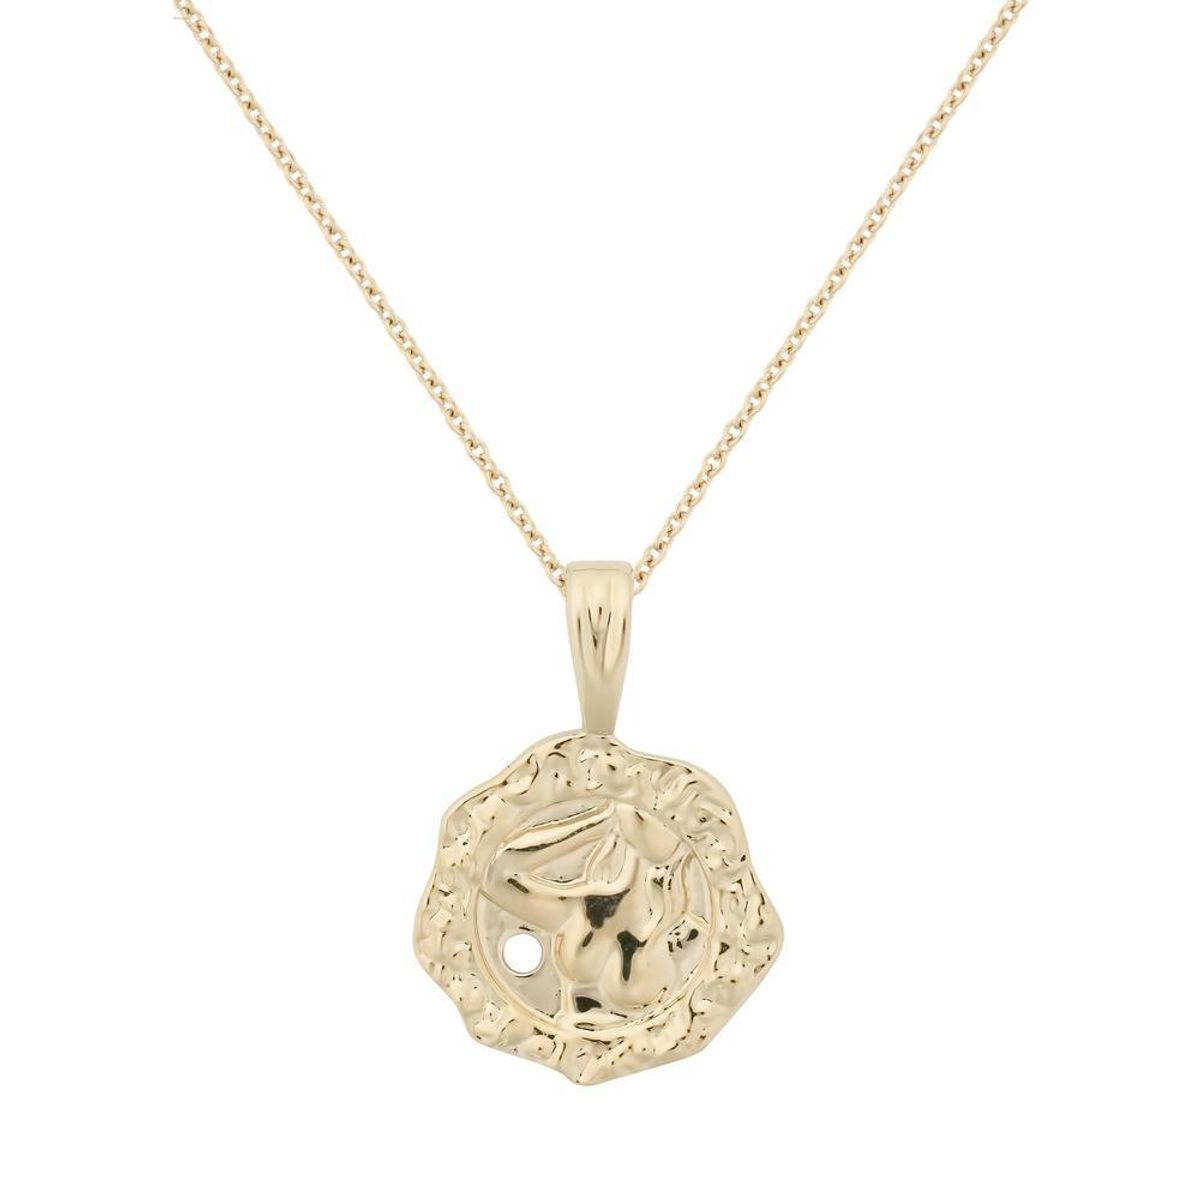 ycl jewels hexagonal femme necklace